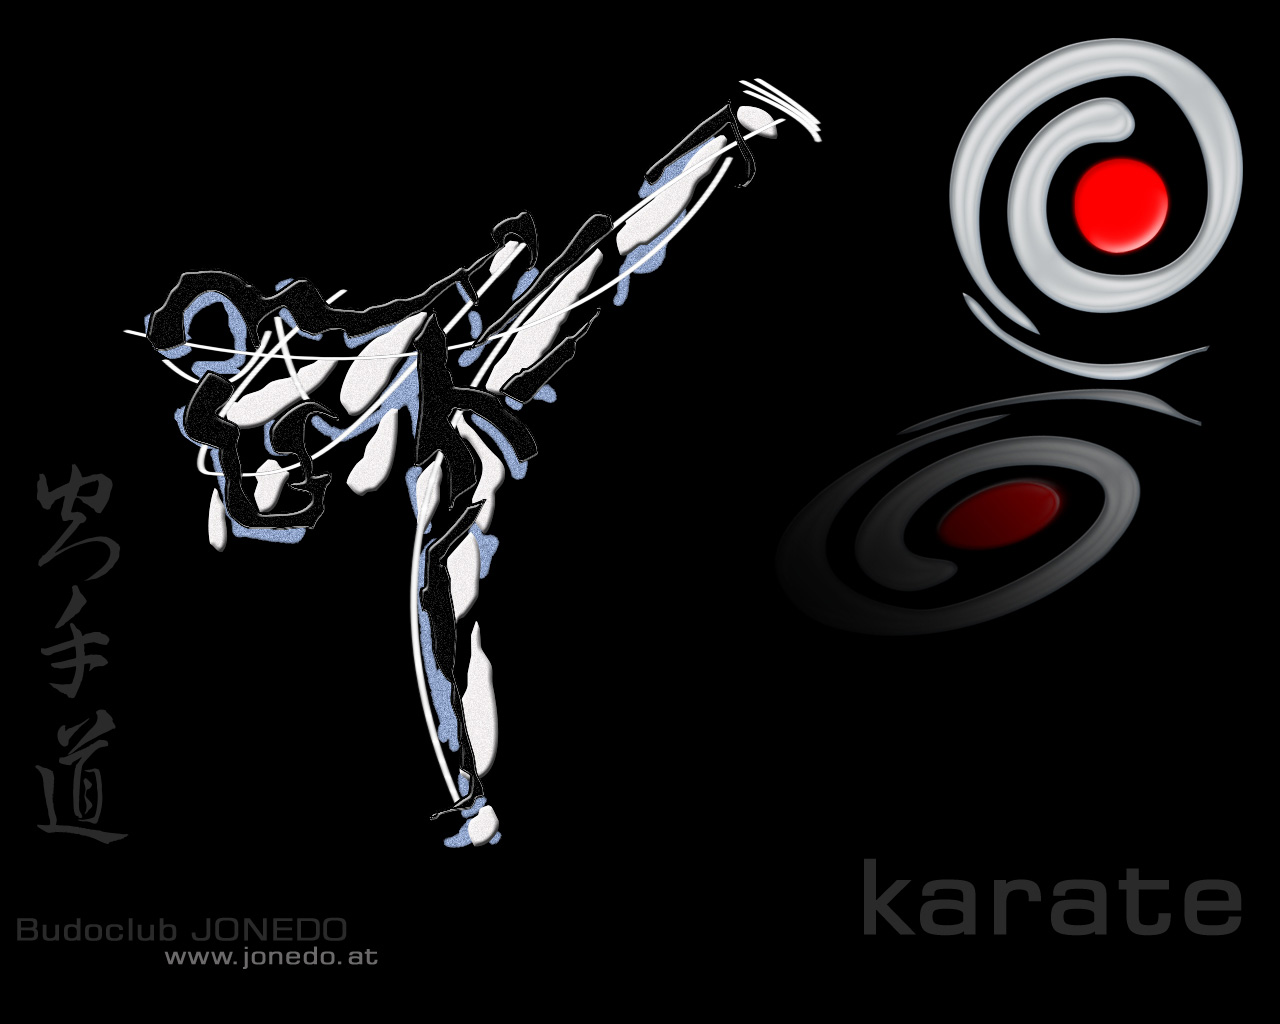 Karate HD Wallpapers  Android Apps on Google Play 1280x1024